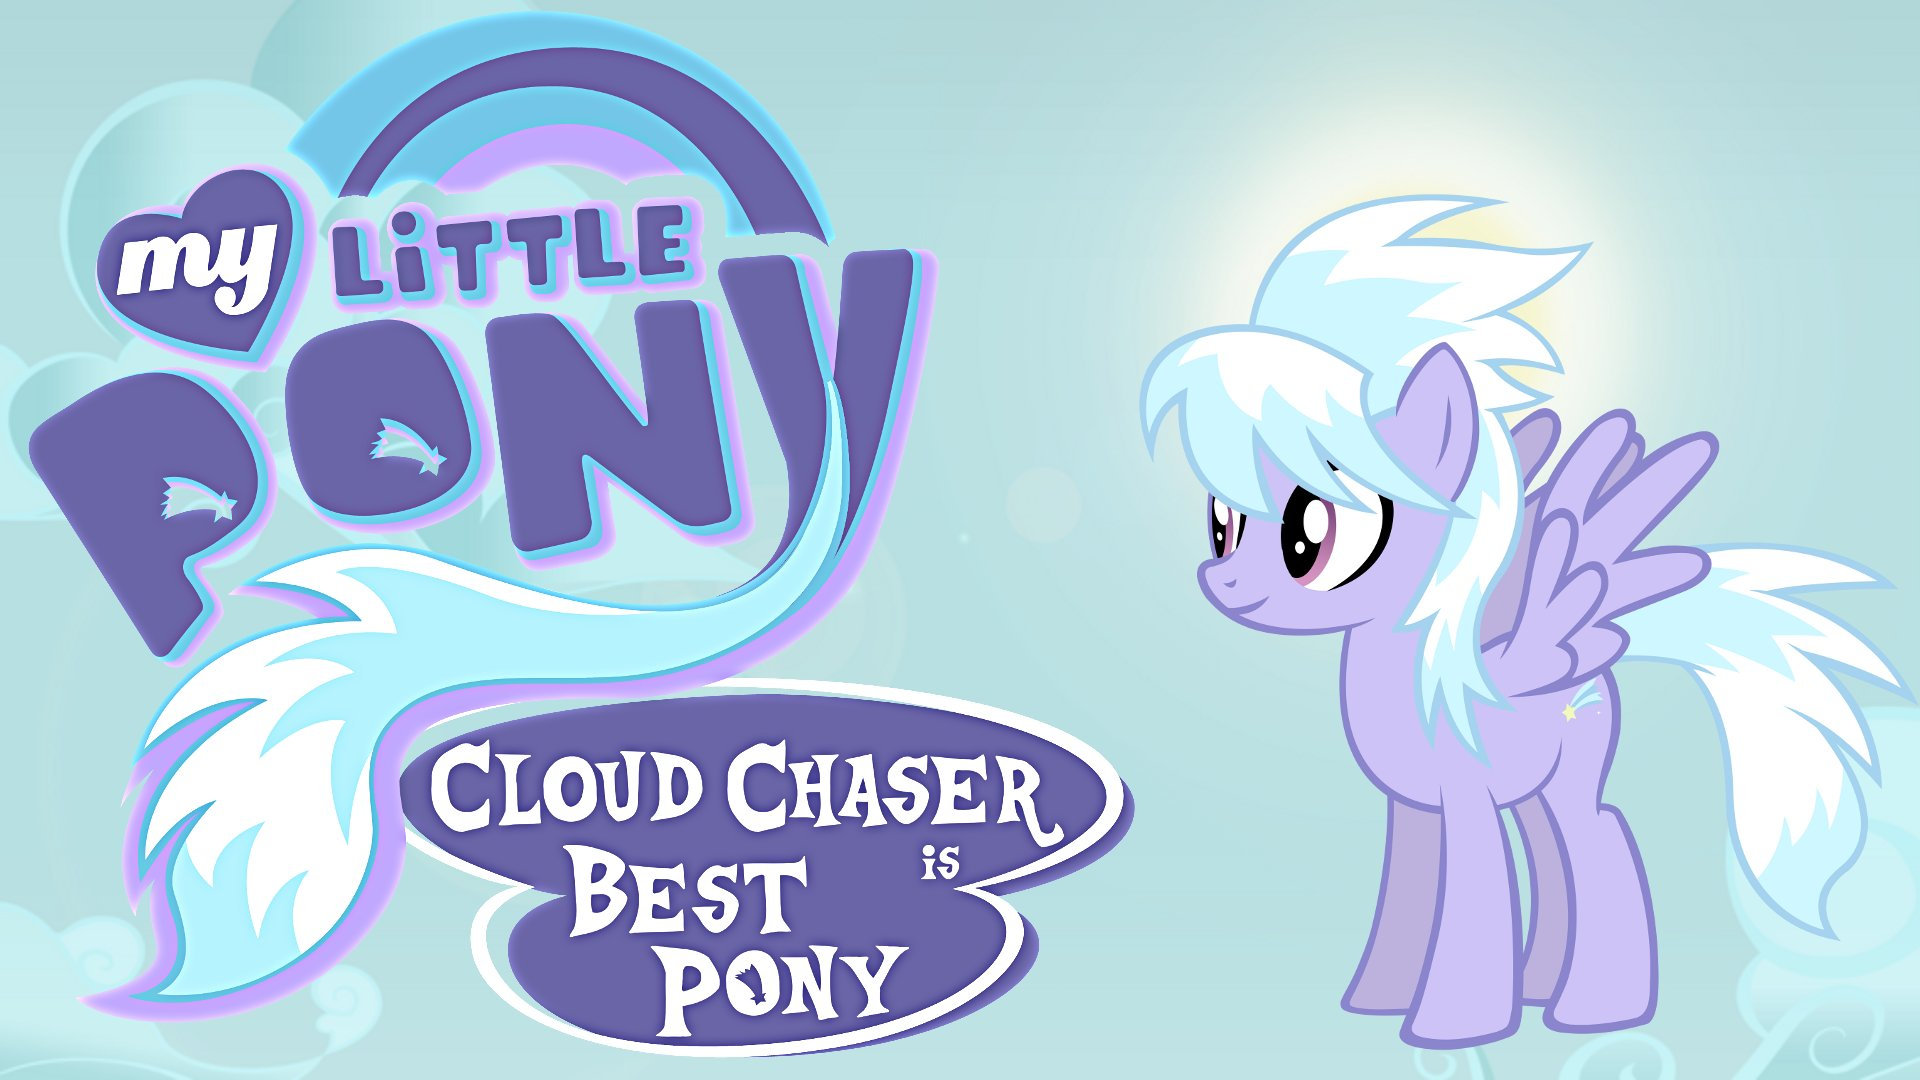 Wallpaper Cloud Chaser best pony by Barrfind, Durpy and jamescorck